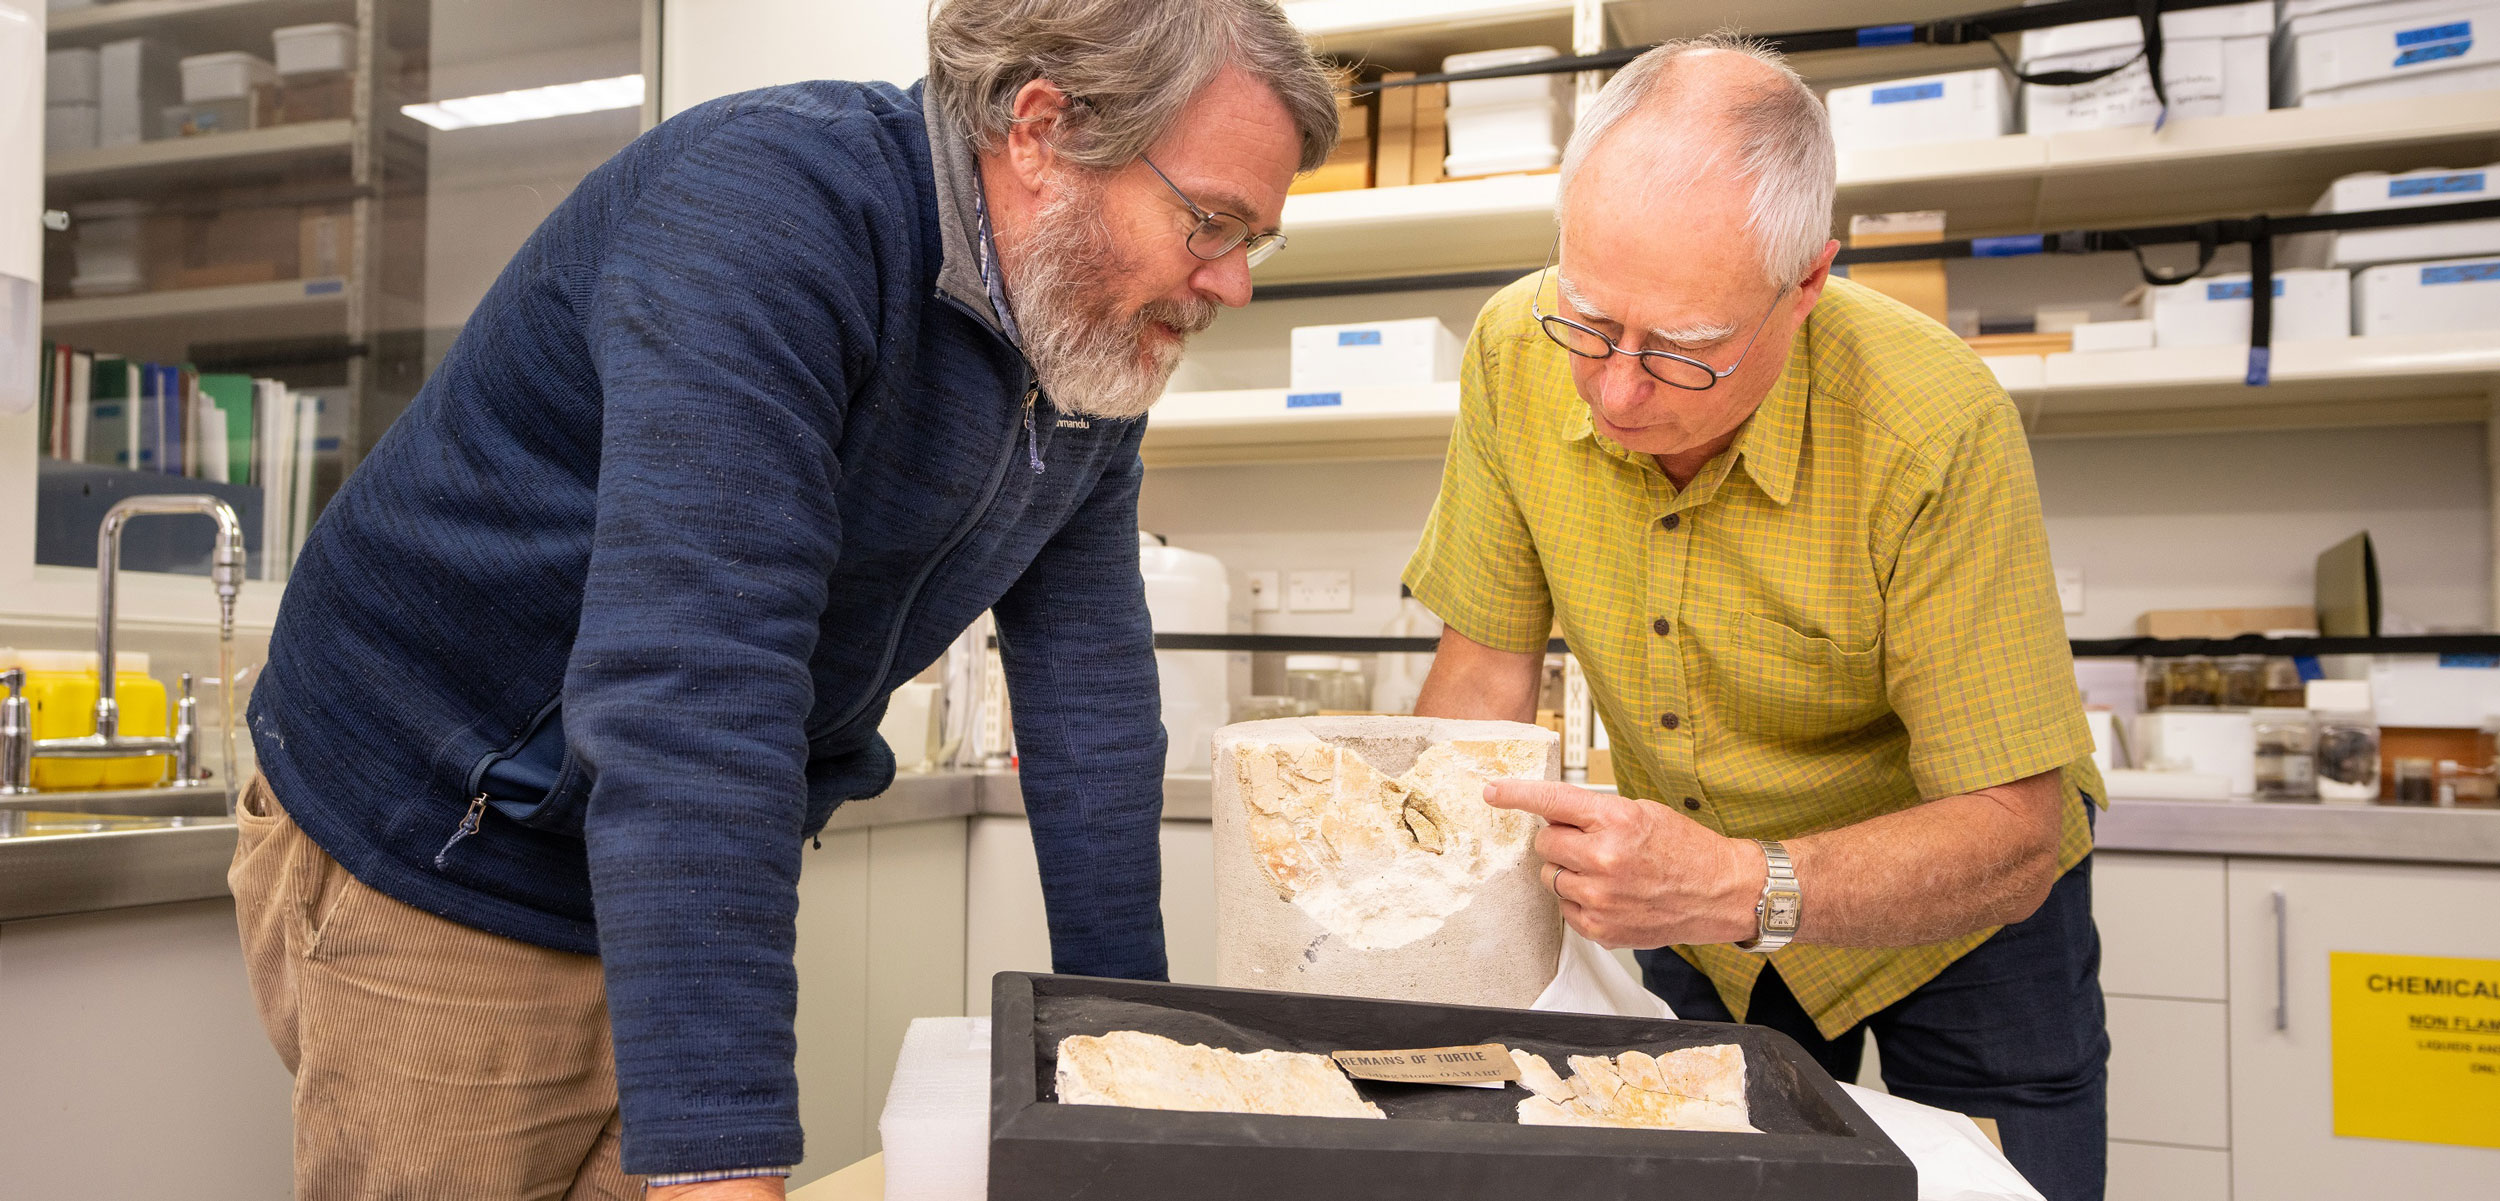 Paul Scofield (left) and Paul Dean (right) examine a fossilized turtle bone found in limestone that was once inside a pillar in the Oxford Terrace Baptist Church in Christchurch, New Zealand